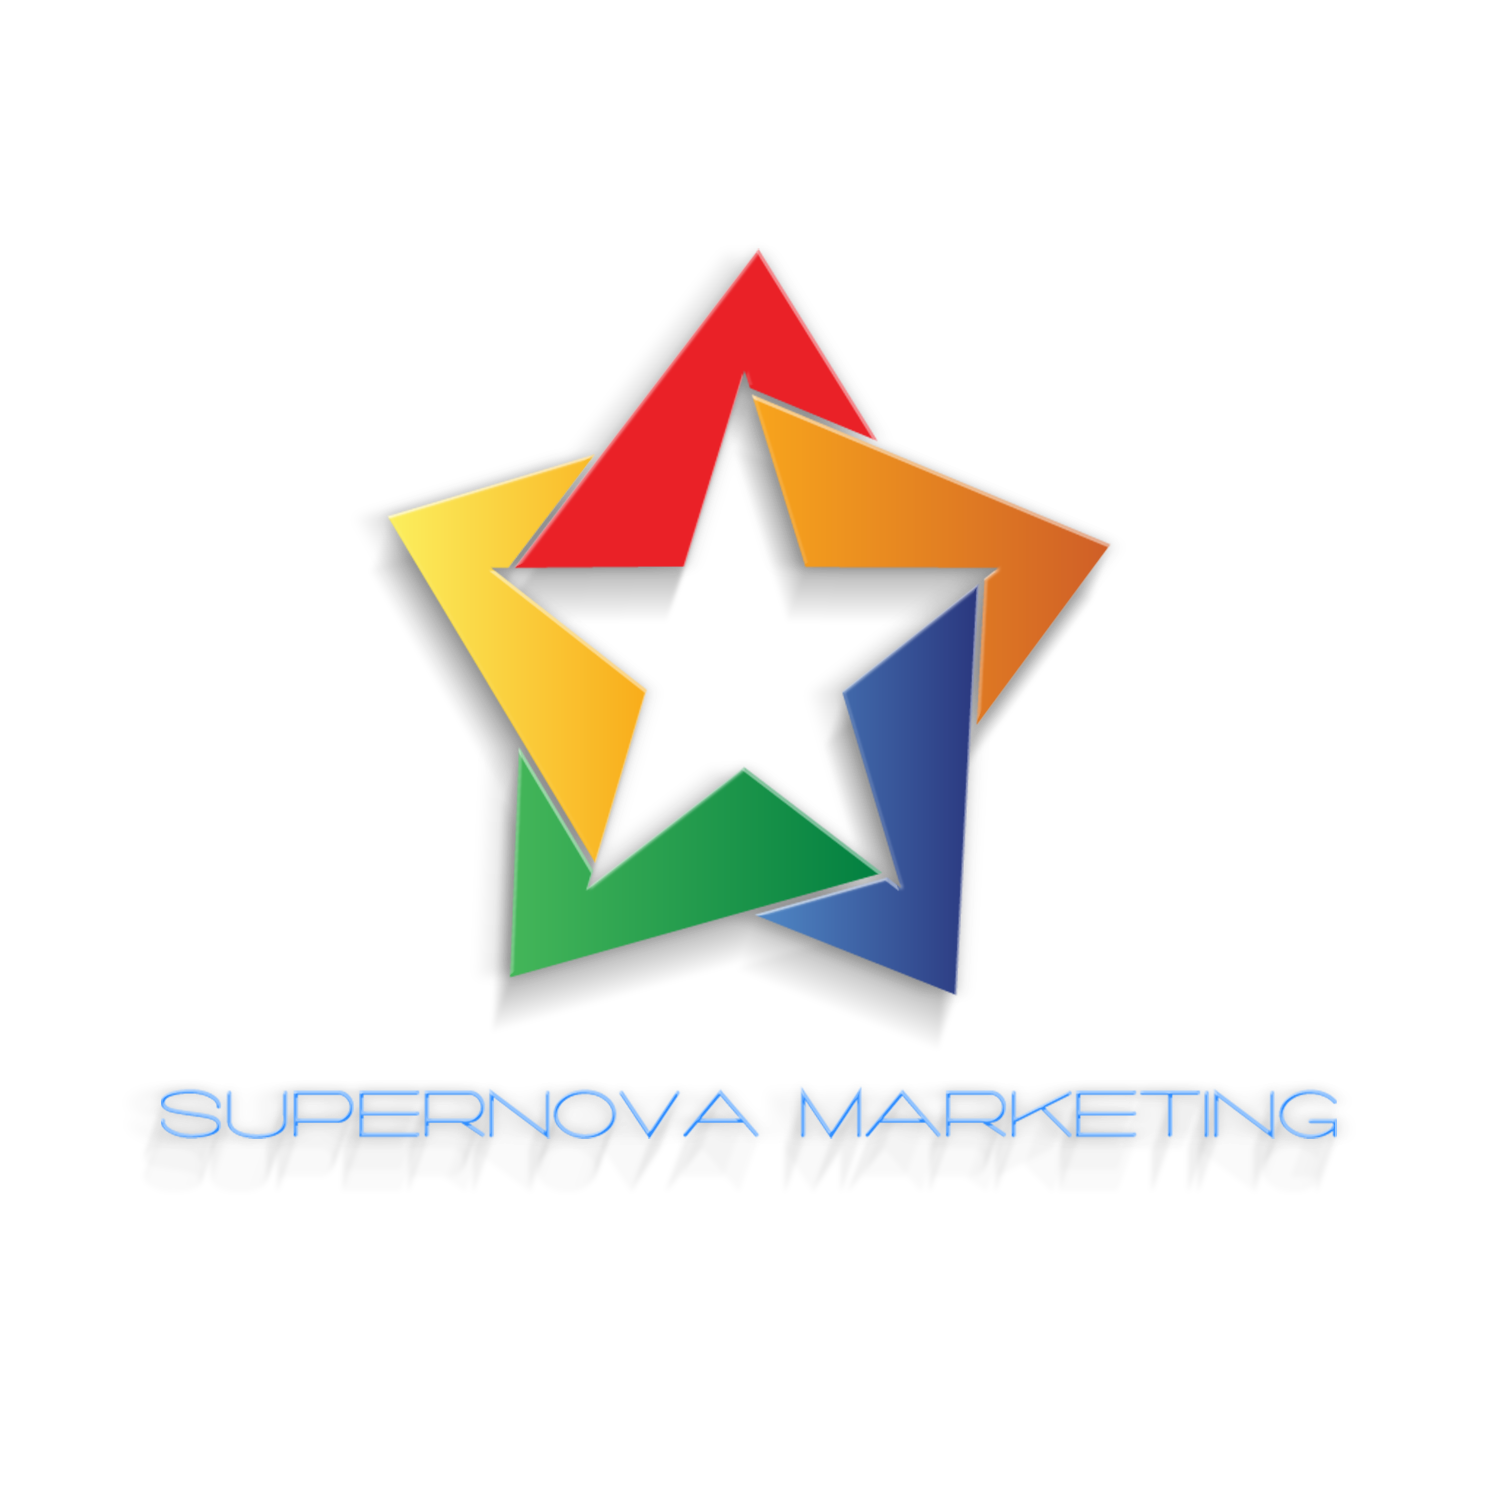 Supernova Marketing – Trinidad and Tobago Social Media Marketing